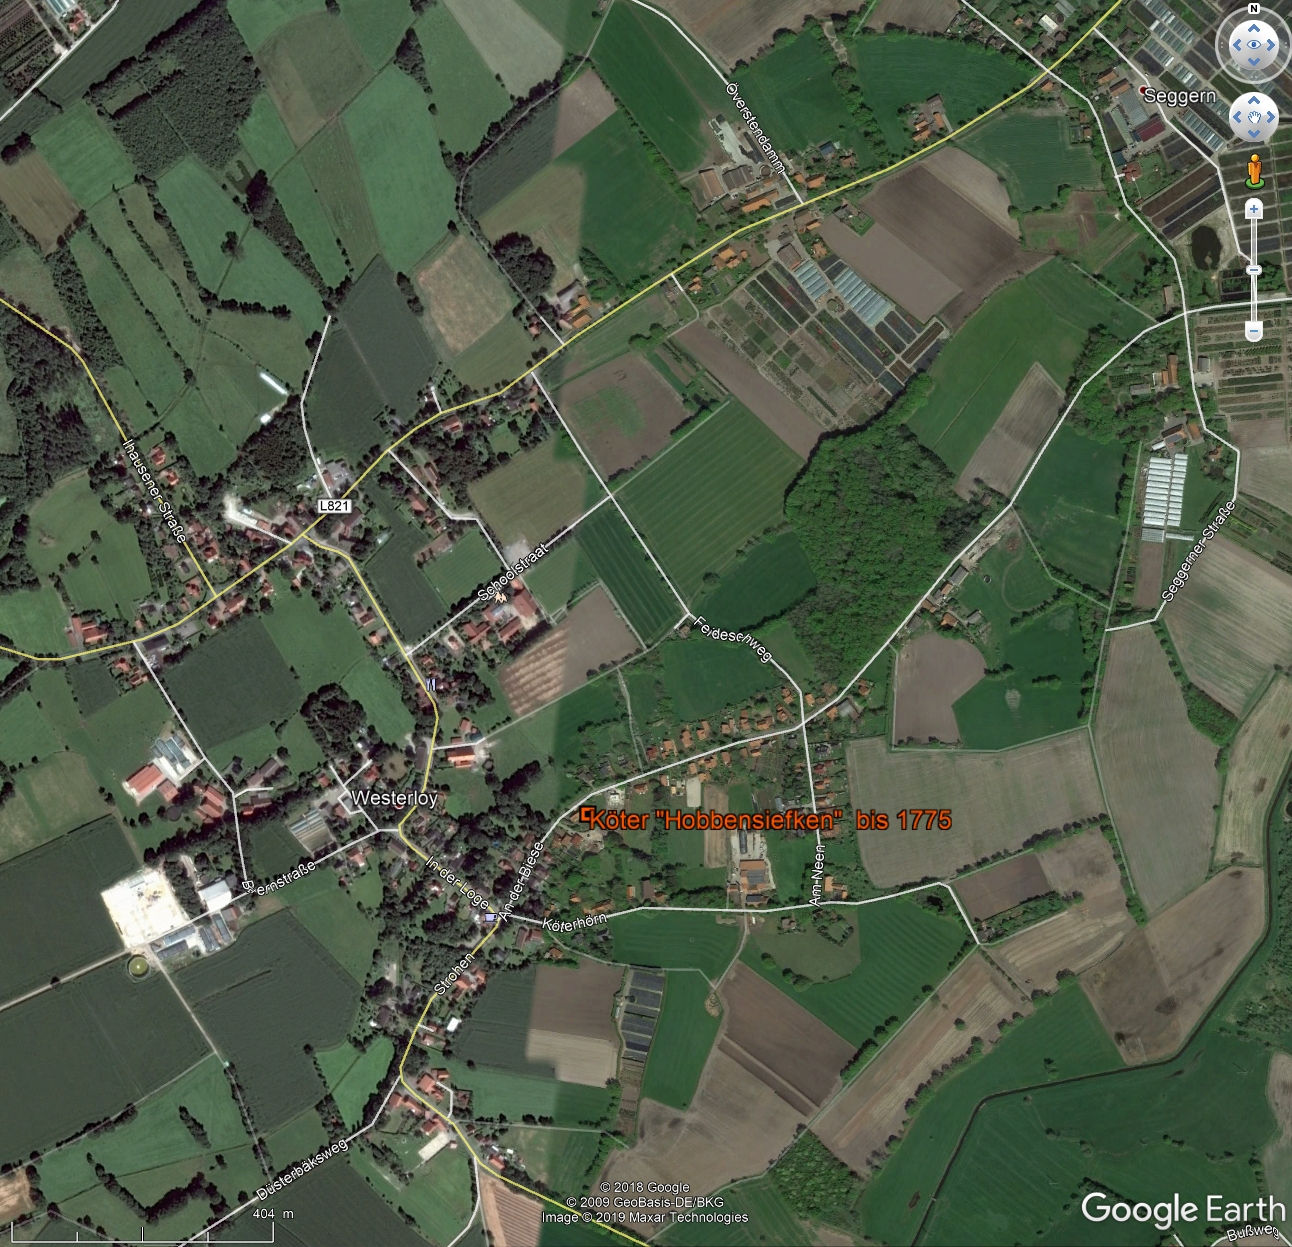 Hobbensiefken-Farm in Westerloy in GoogleEarth